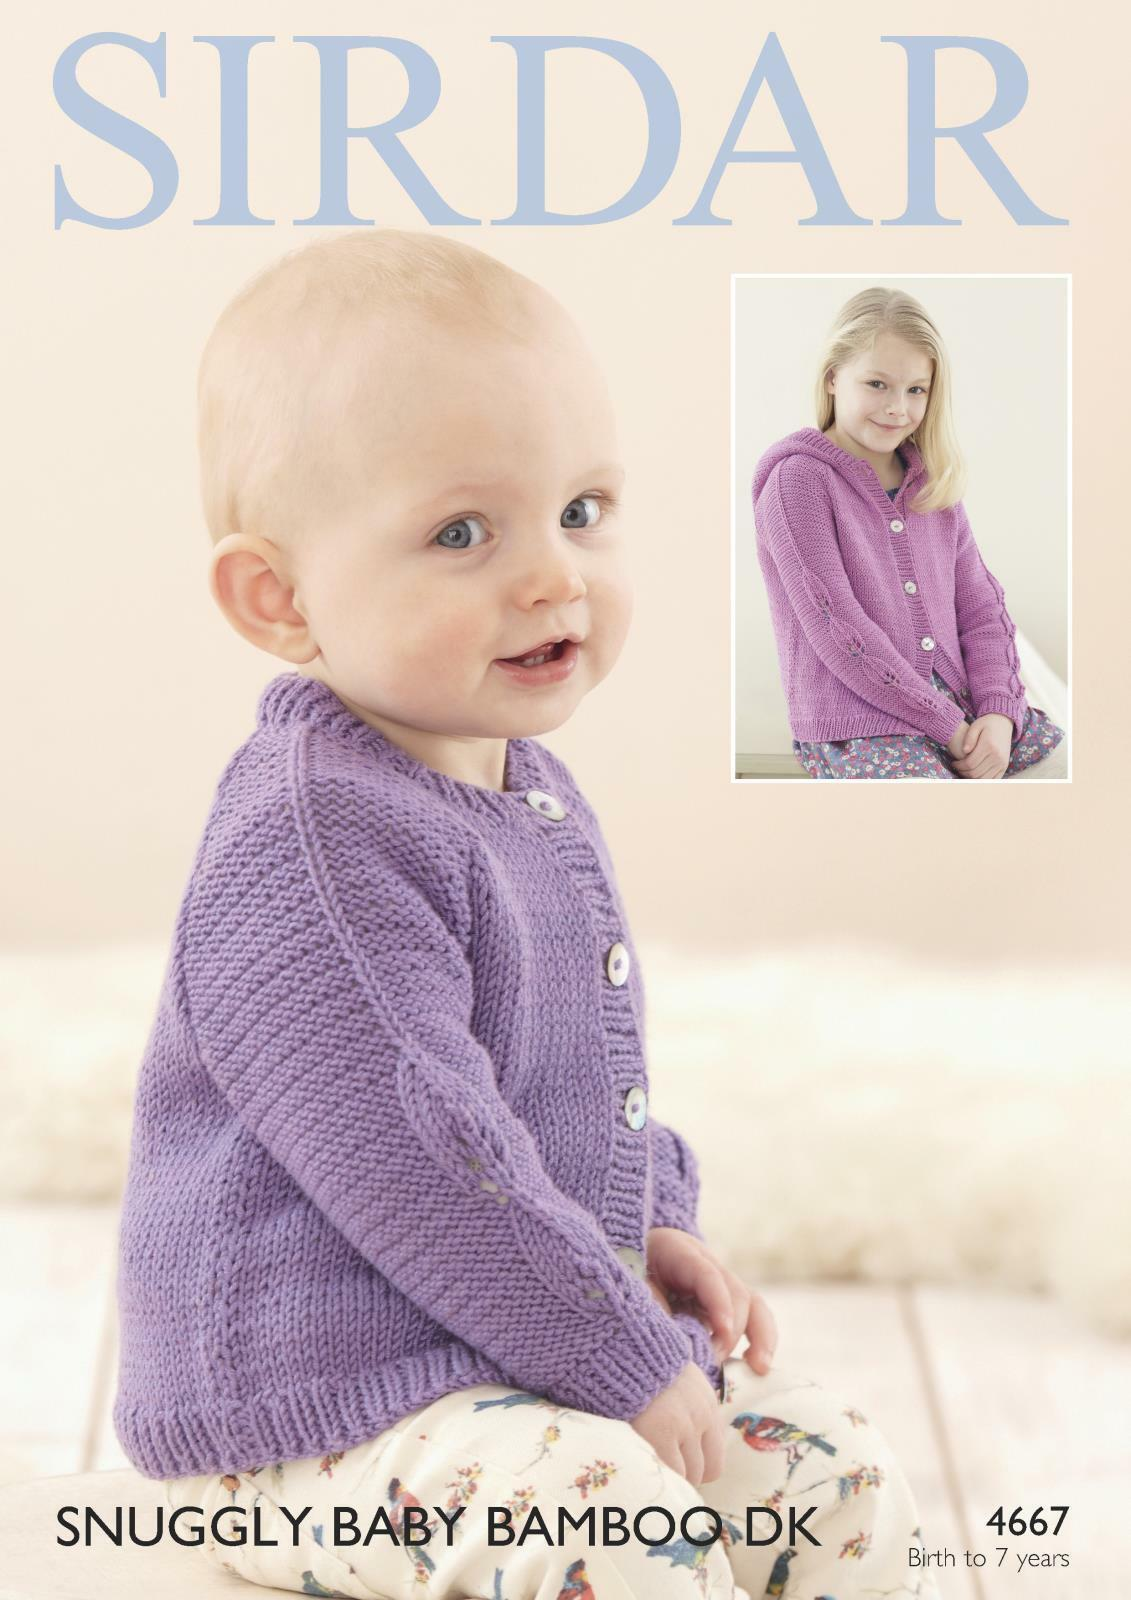 Sirdar Knitting Patterns For Children : Sirdar 4667 Knitting Pattern Baby Childrens Cardigans in Snuggly Baby Bamboo ...